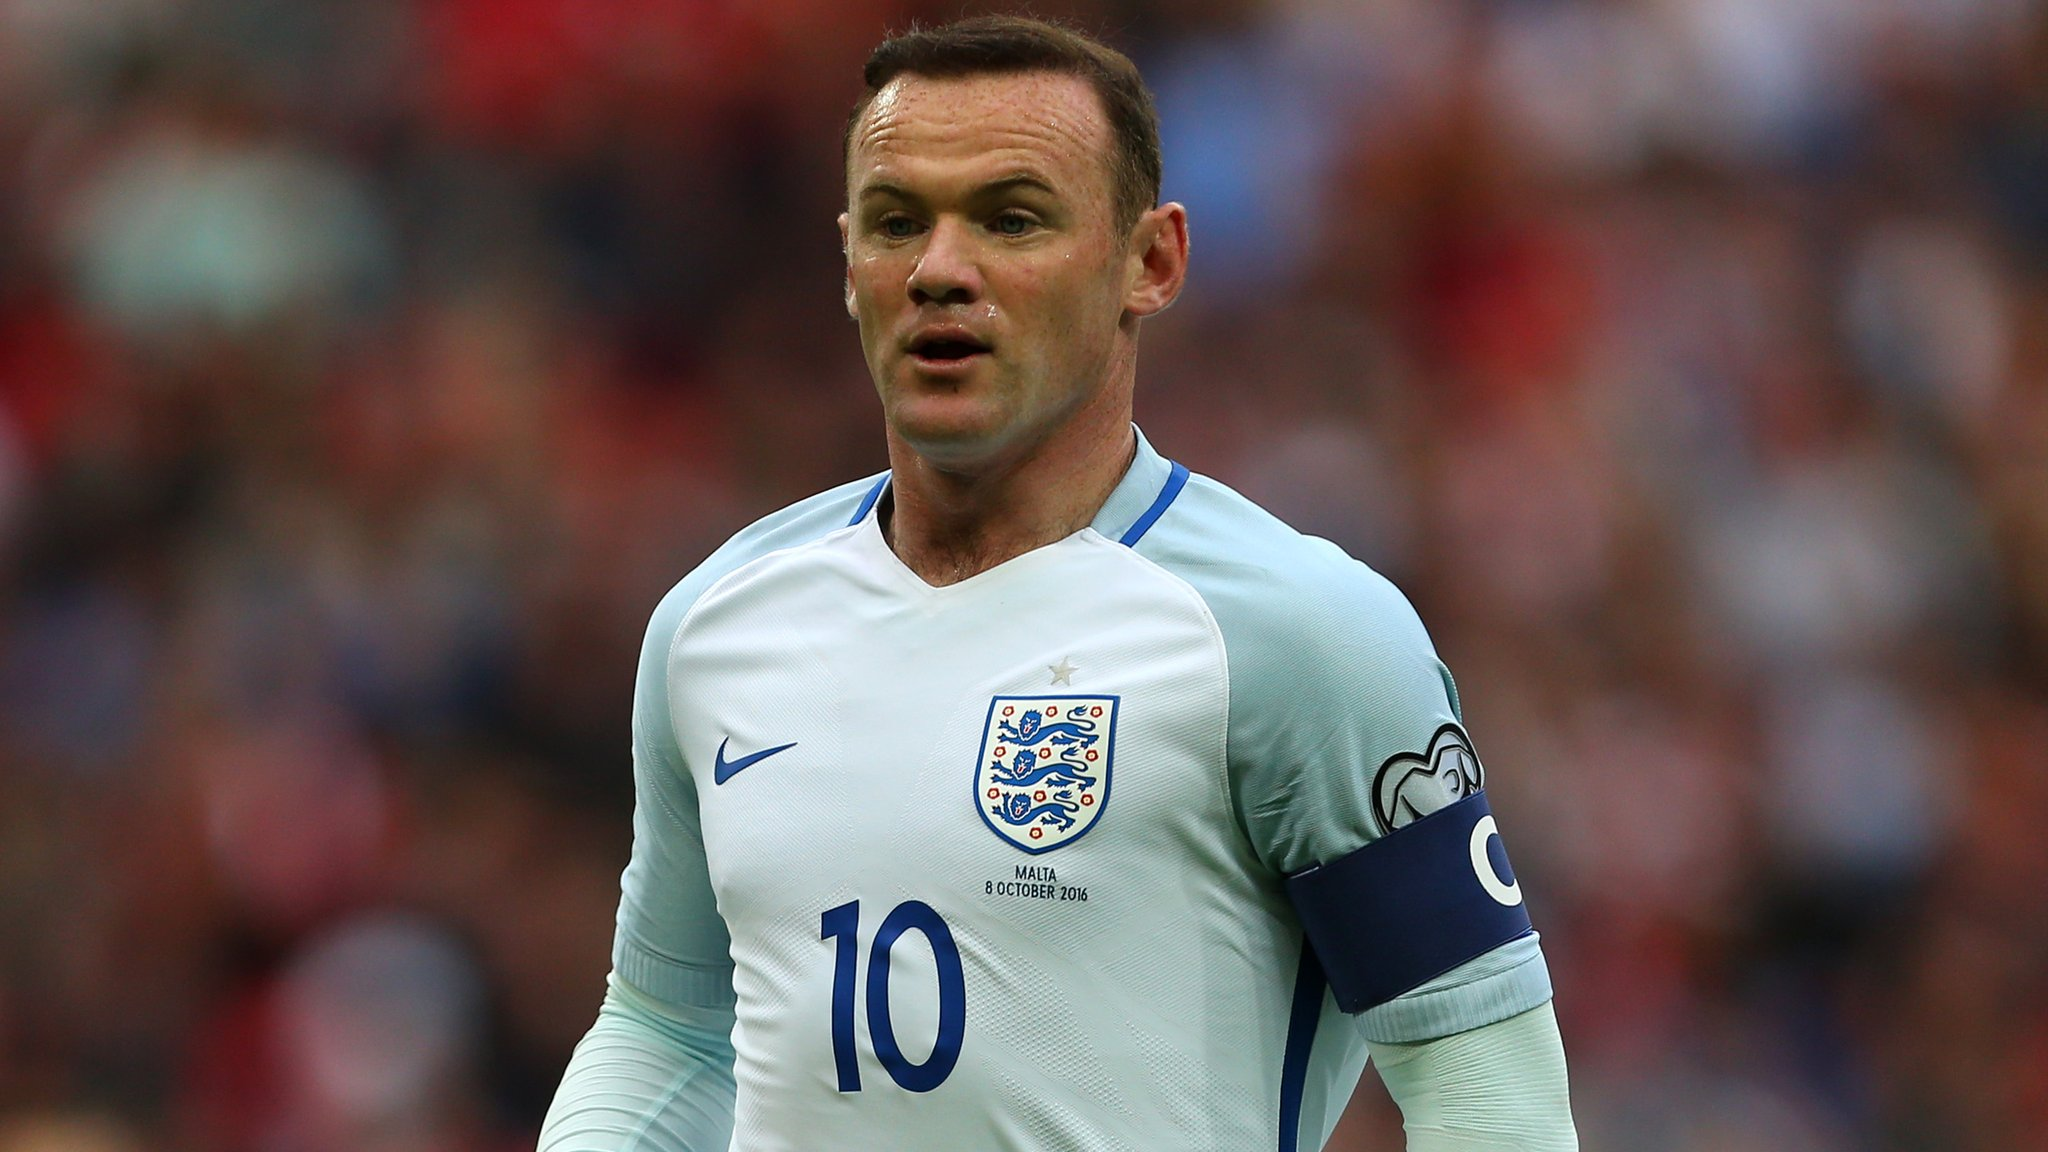 'I don't think you can give caps out like gifts' - Shilton on Rooney return